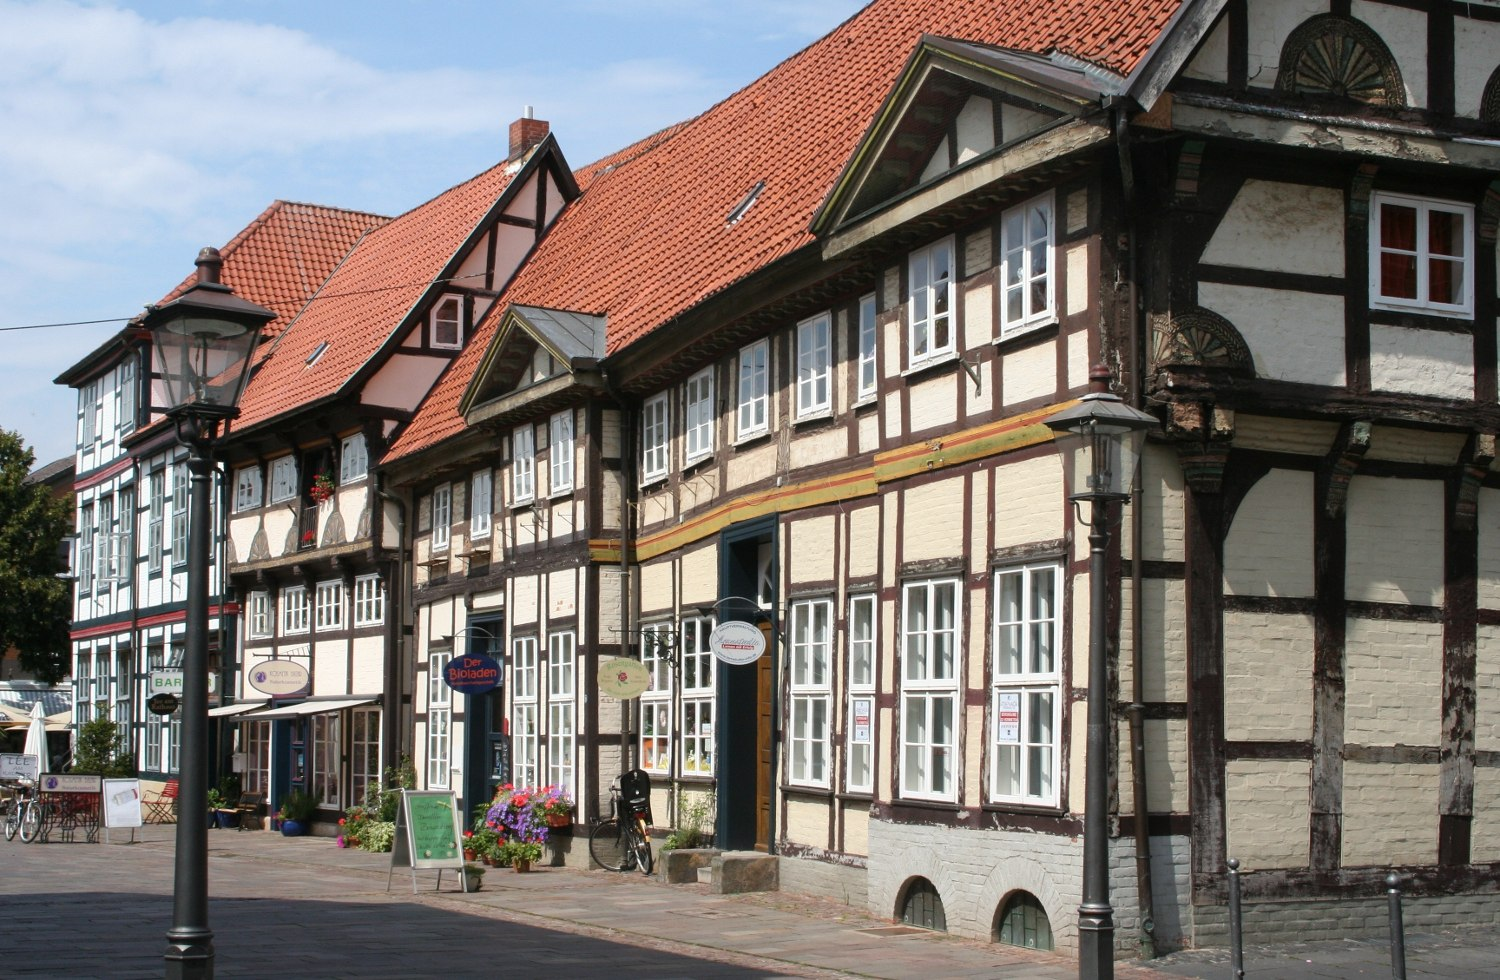 The beautiful half-timbered houses in the old town of Nienburg.